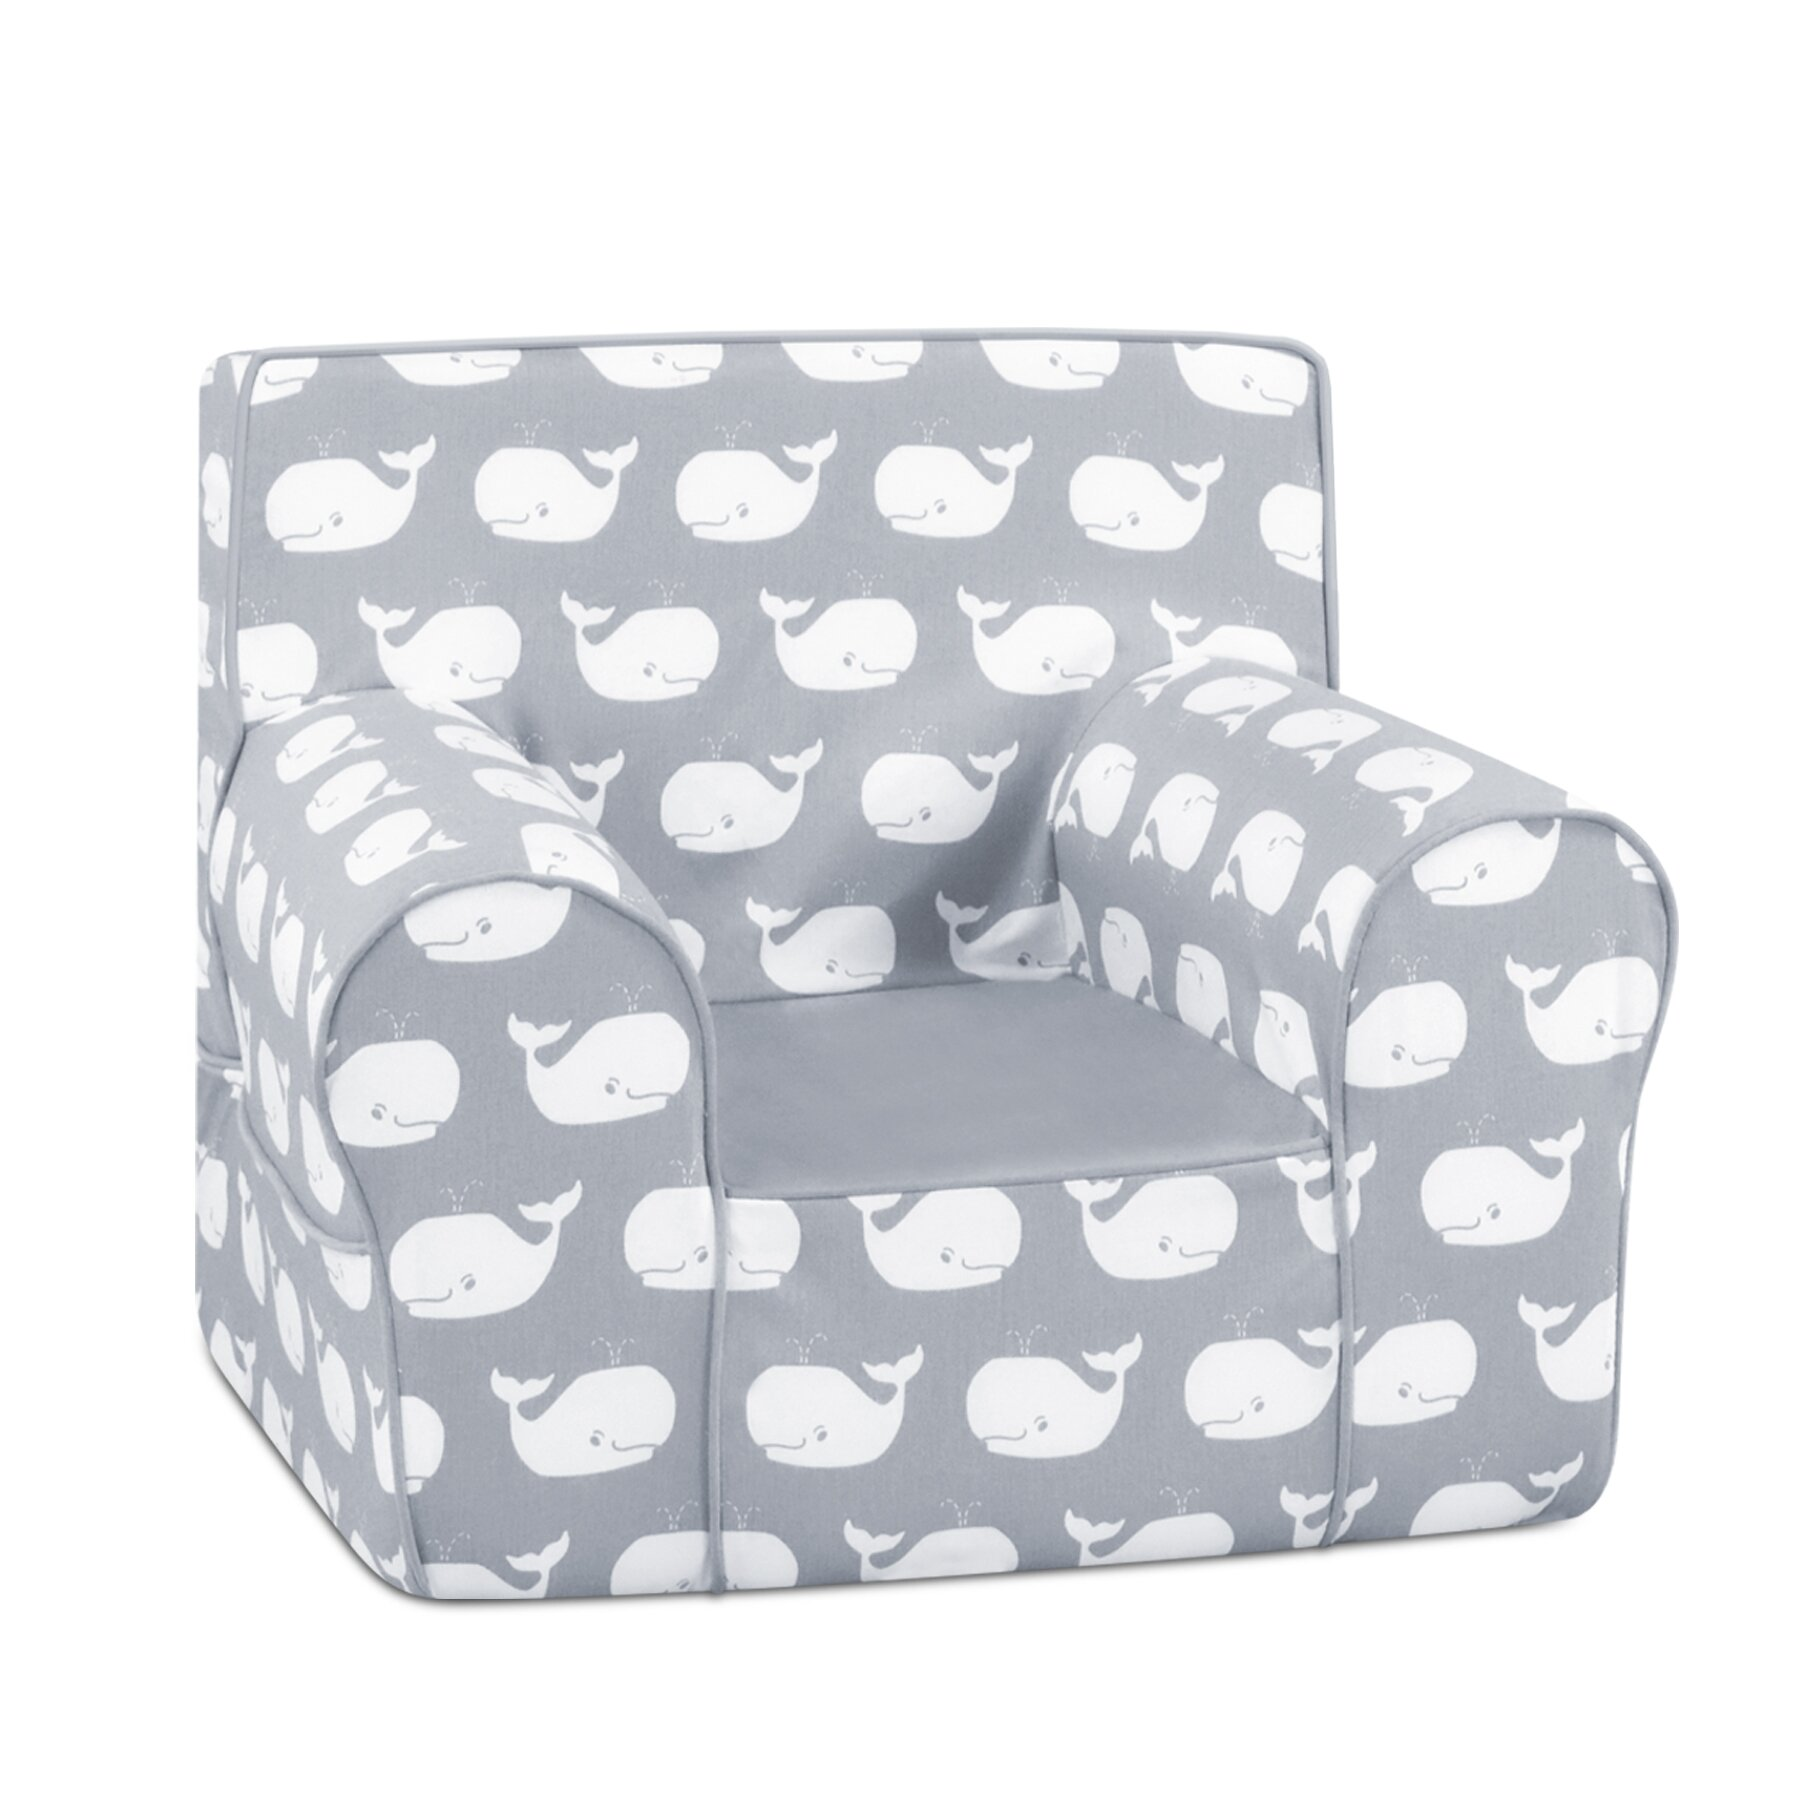 Kangaroo trading company grab n go kids foam chair for Kangaroo outdoor furniture covers